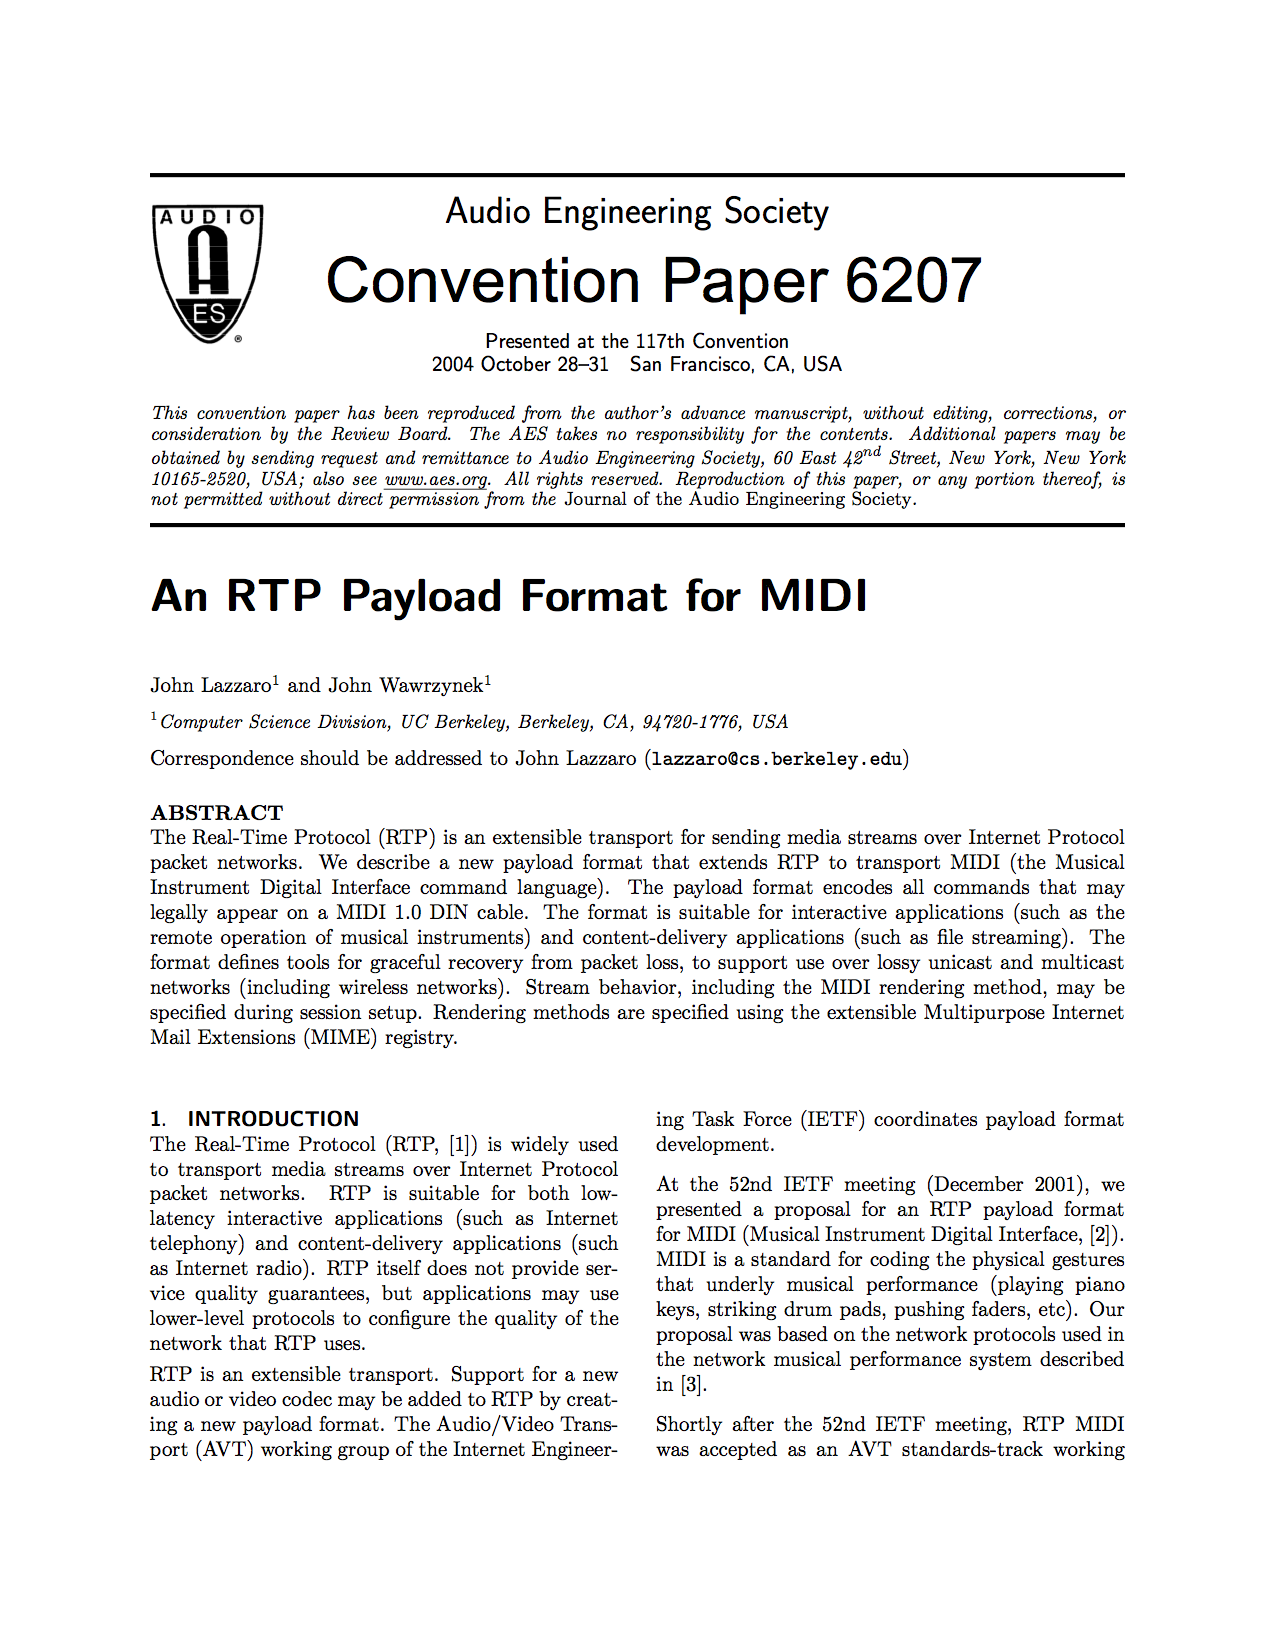 AES E-Library » An RTP Payload Format for MIDI